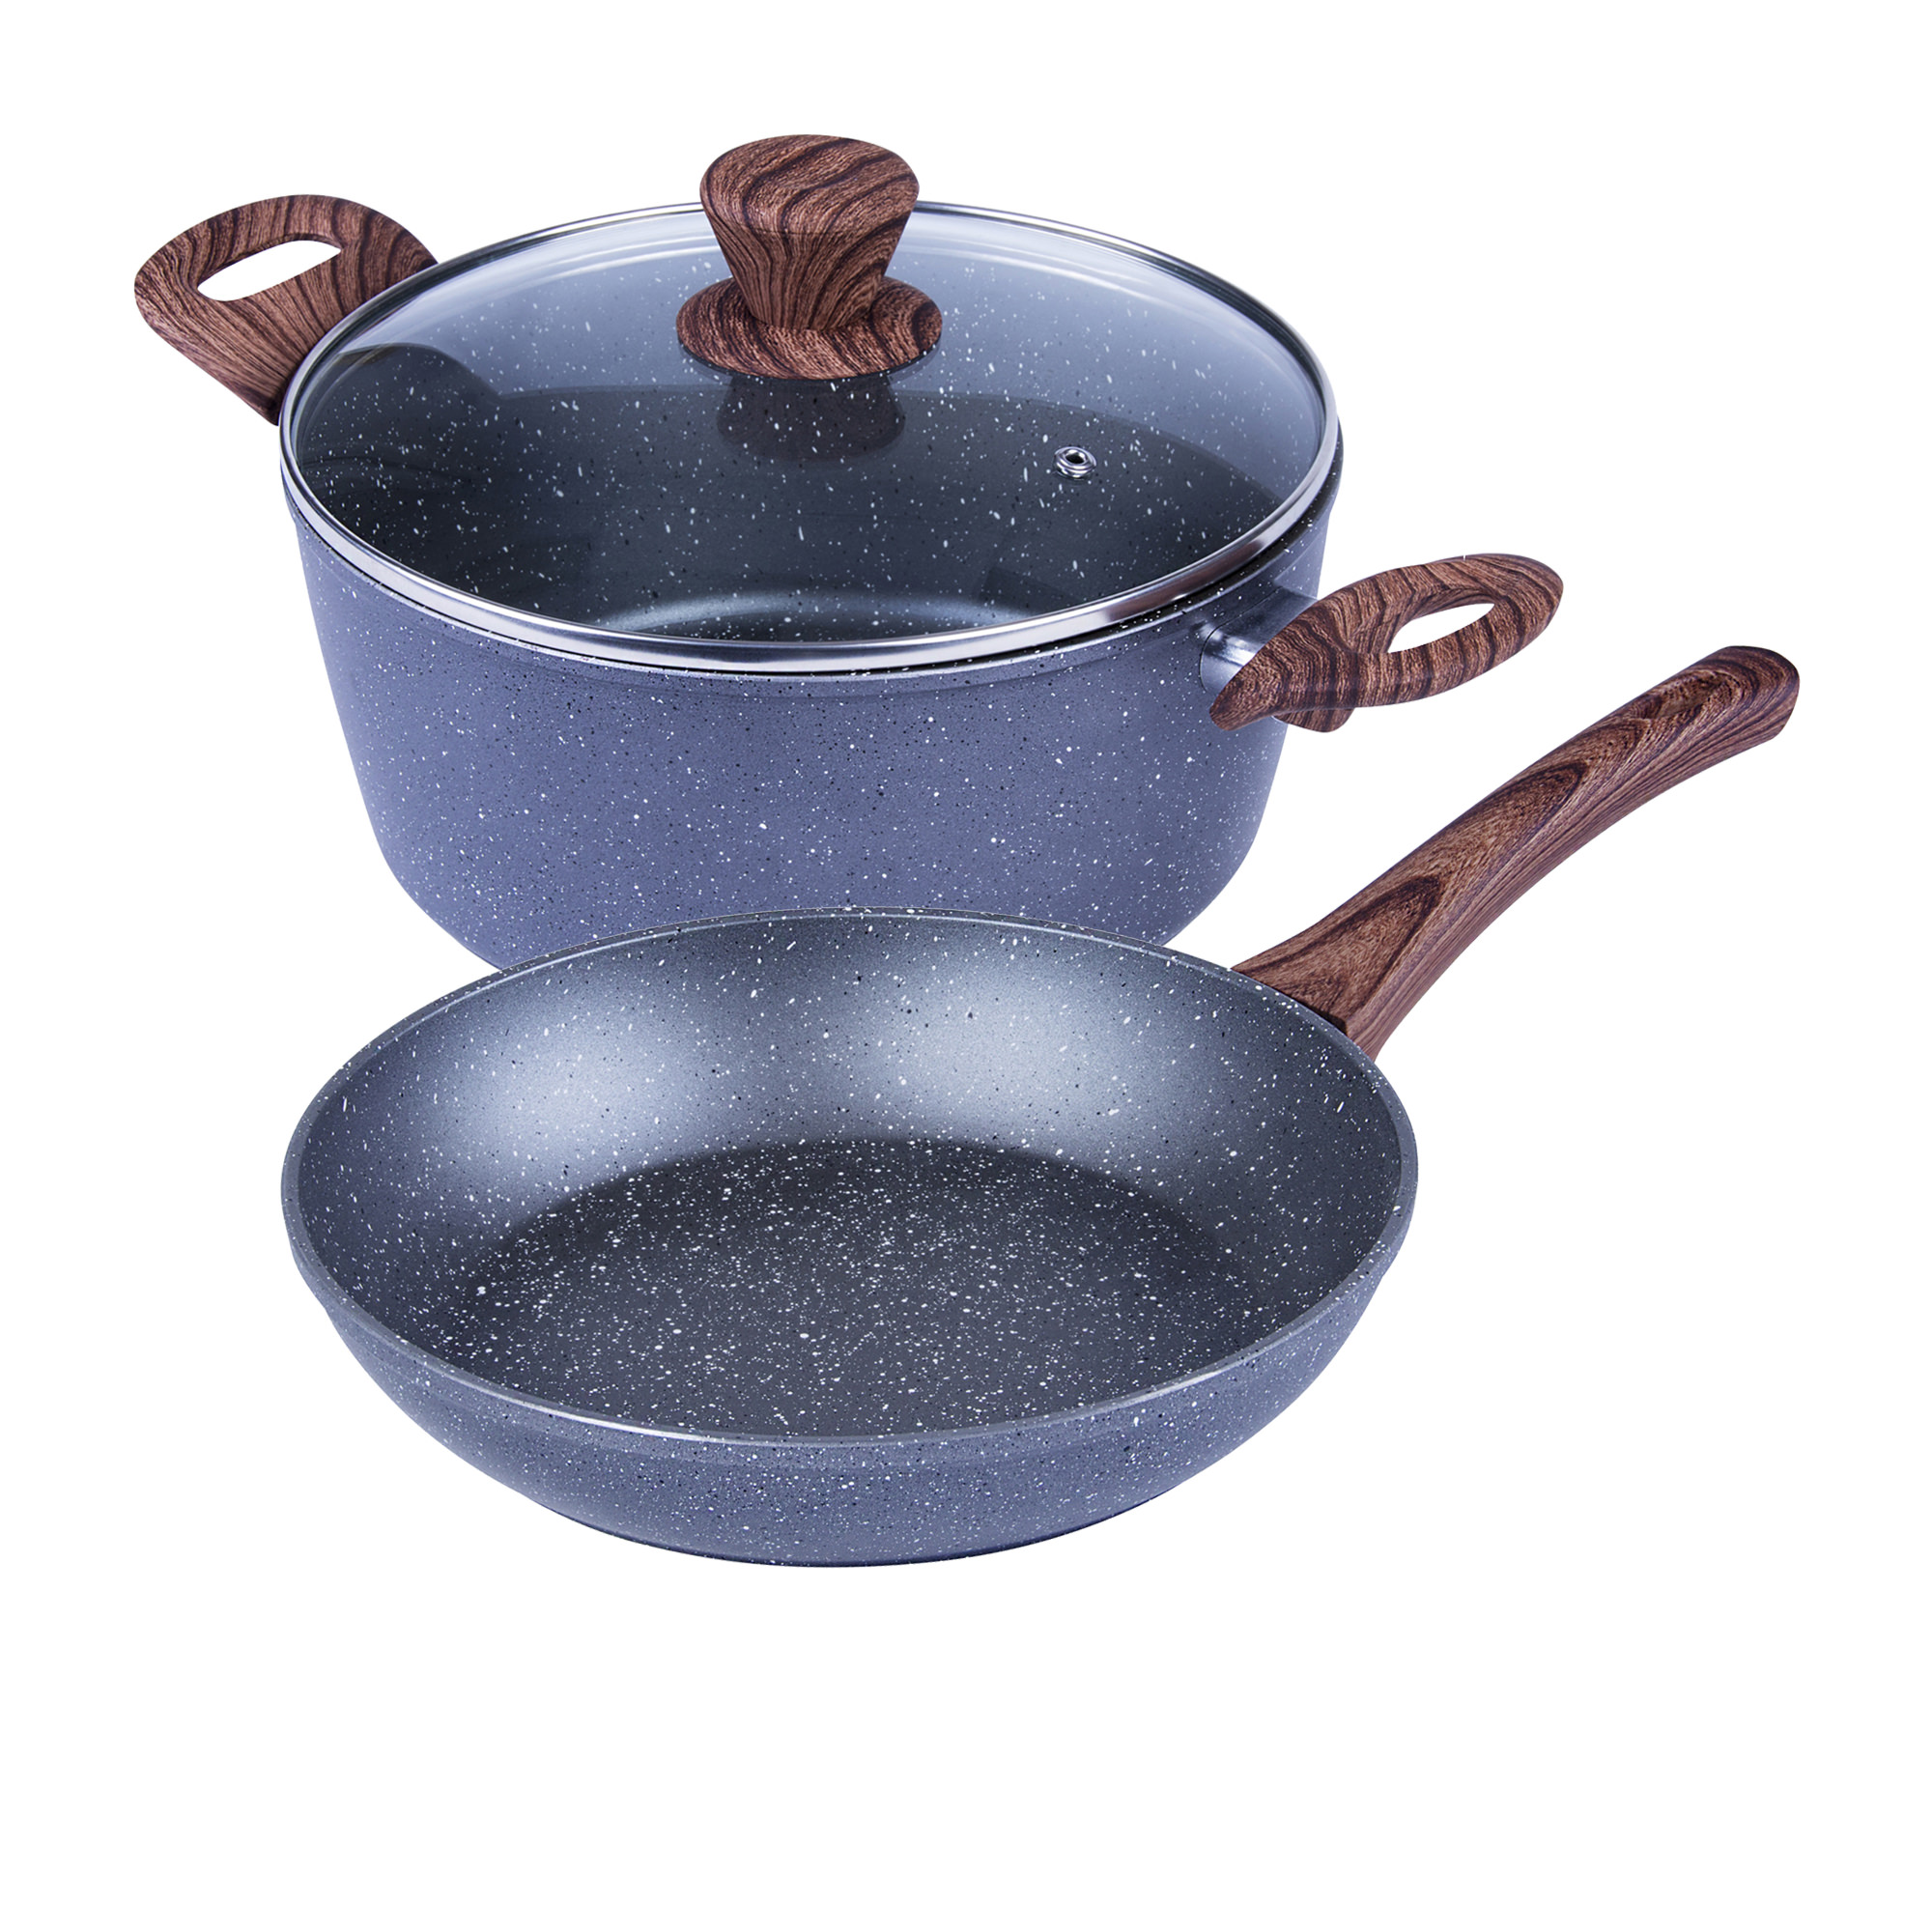 Clevinger 2pc Non-Stick Cookware Set